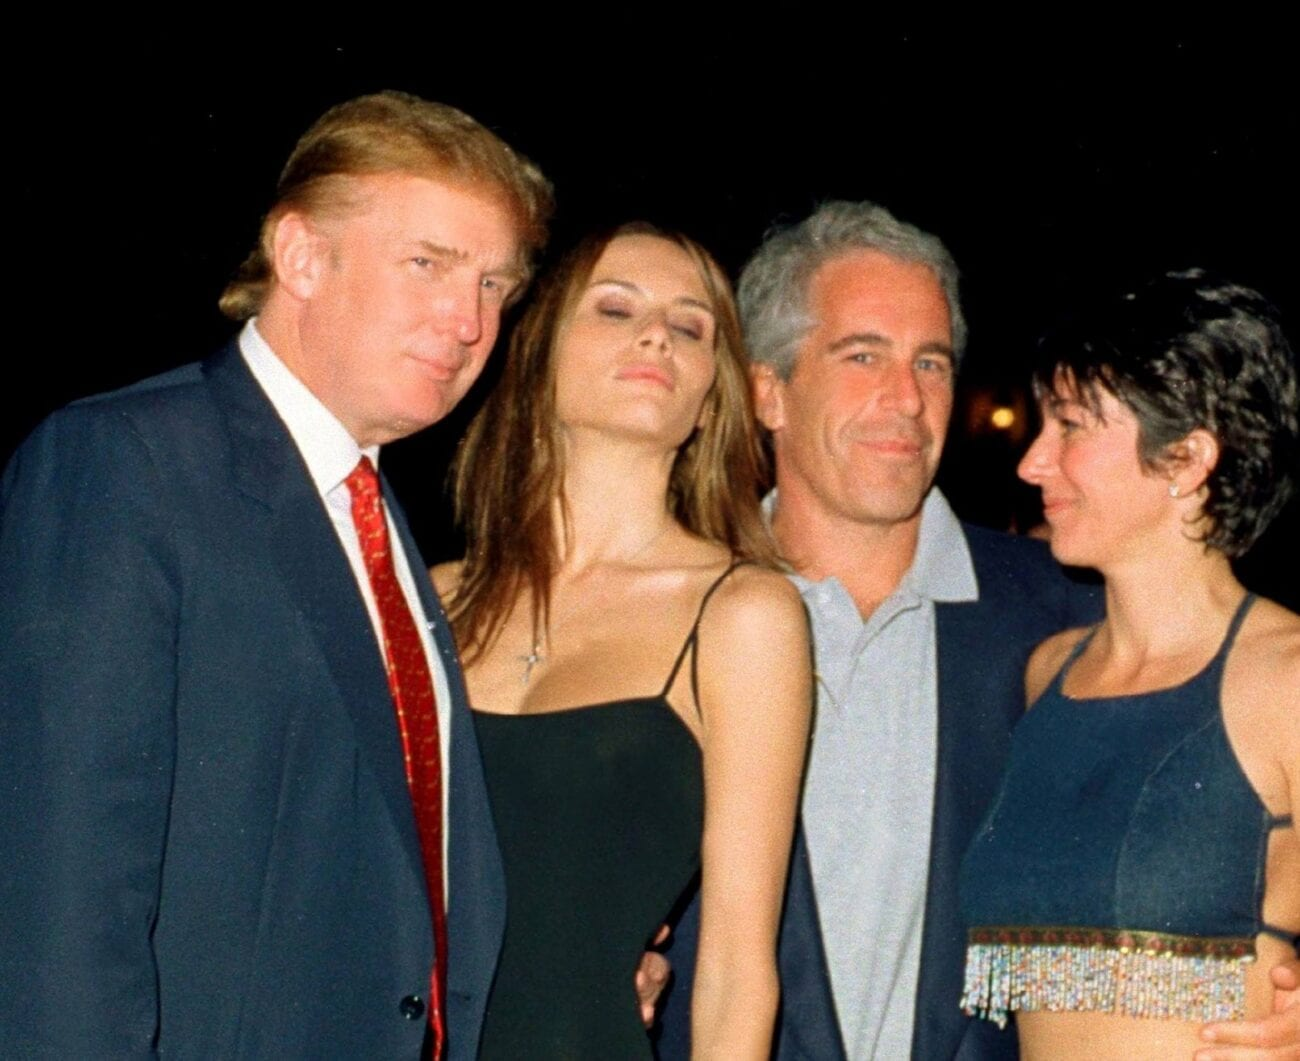 Now that there's no way for Jeffrey Epstein to pay the price for his crimes on his island, it's worth looking into those that stood by his side.